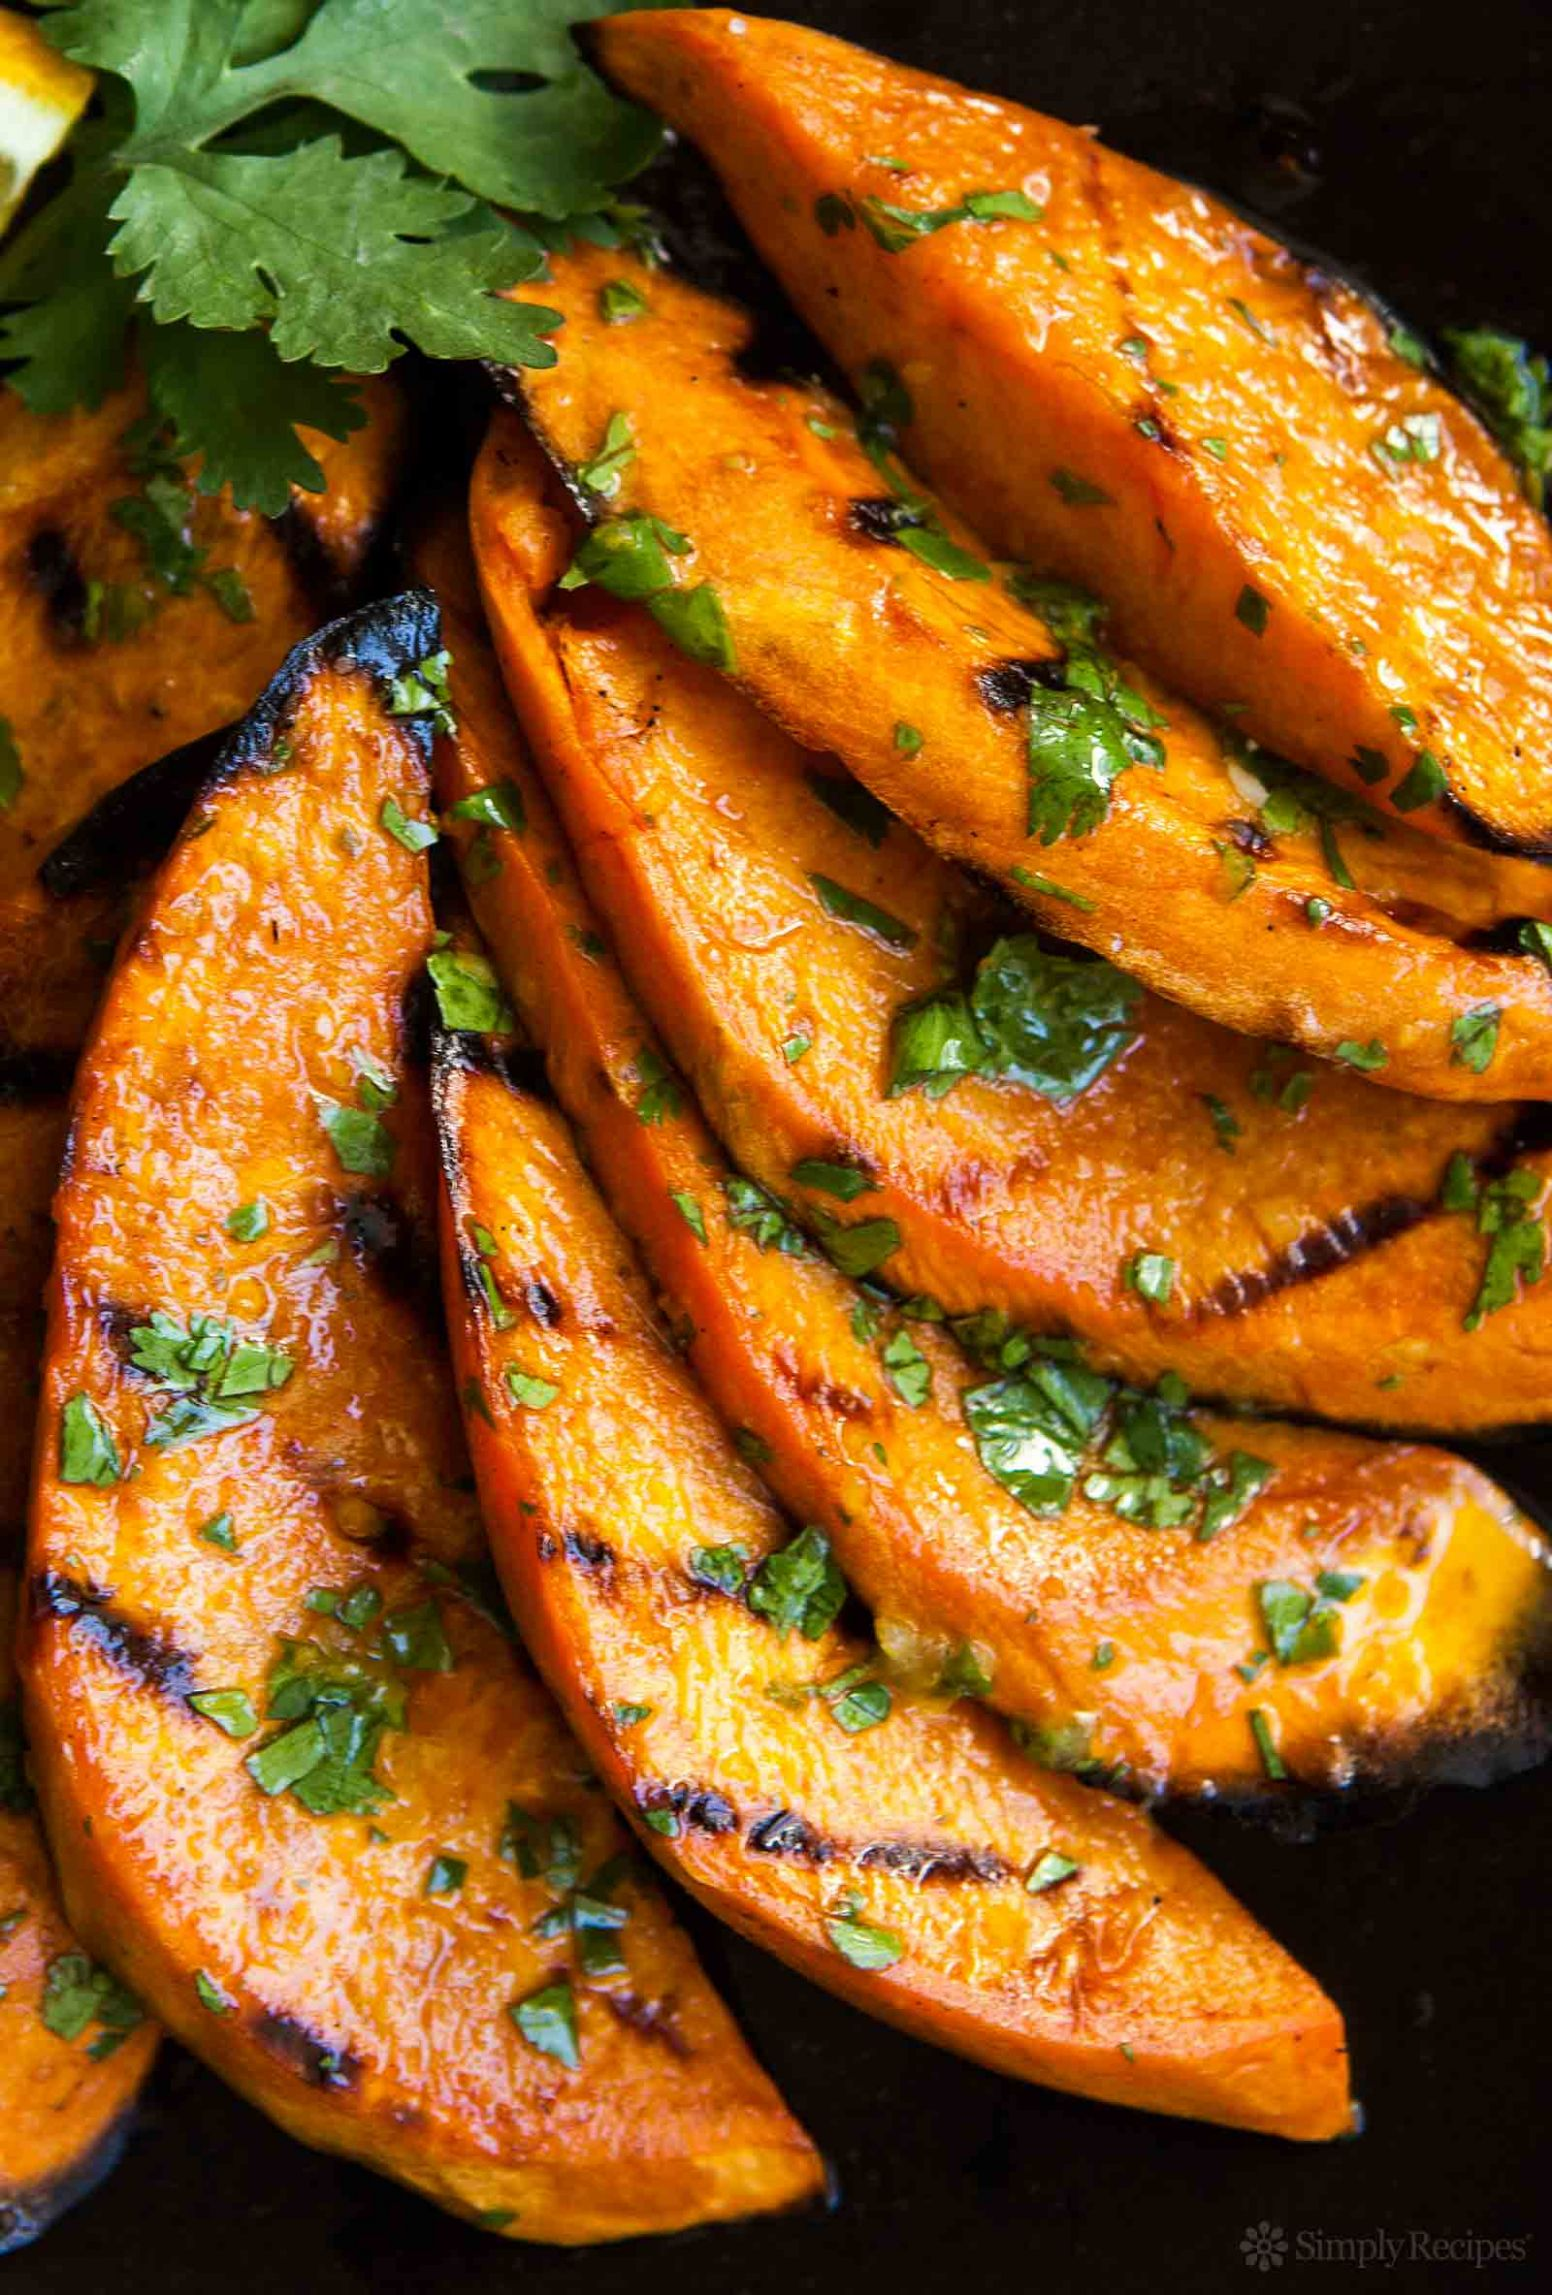 Grilled Sweet Potatoes - Simple Recipes Grilled Sweet Potatoes